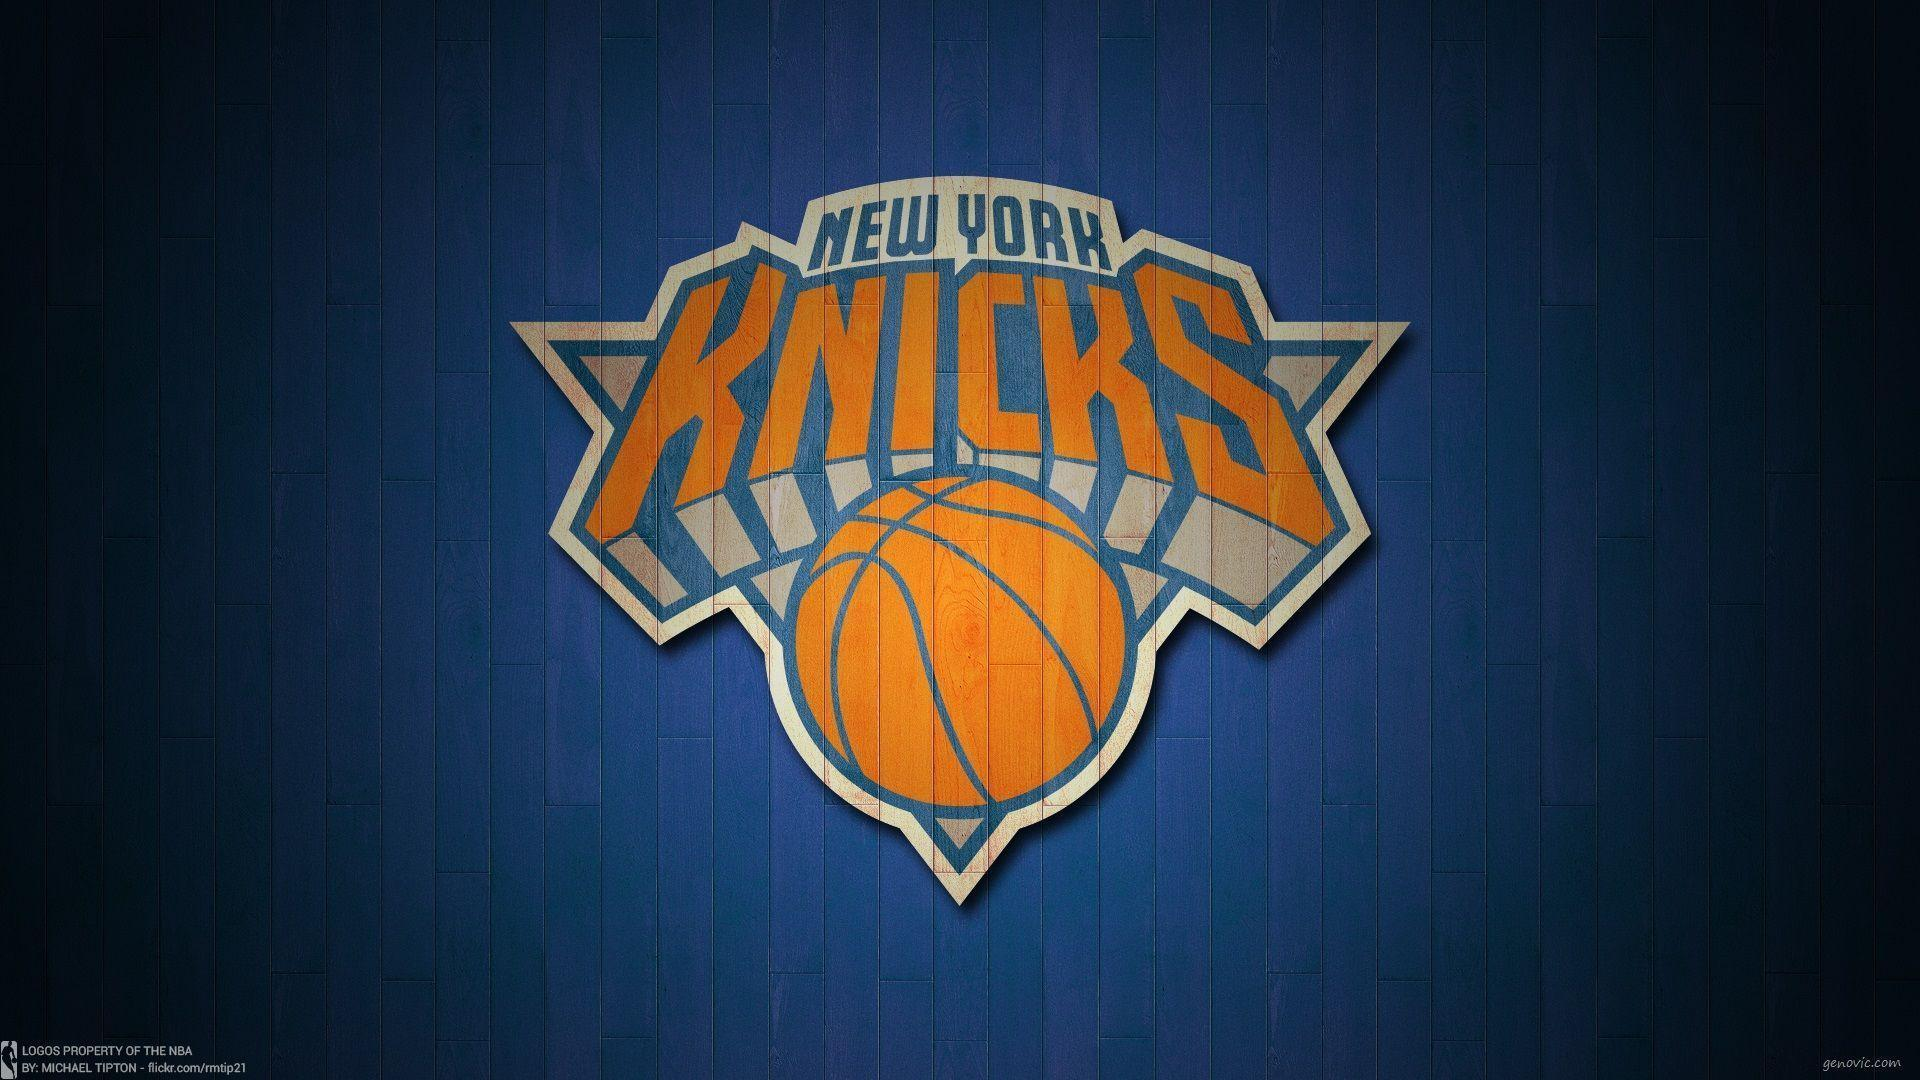 Knicks wallpapers wallpaper cave.